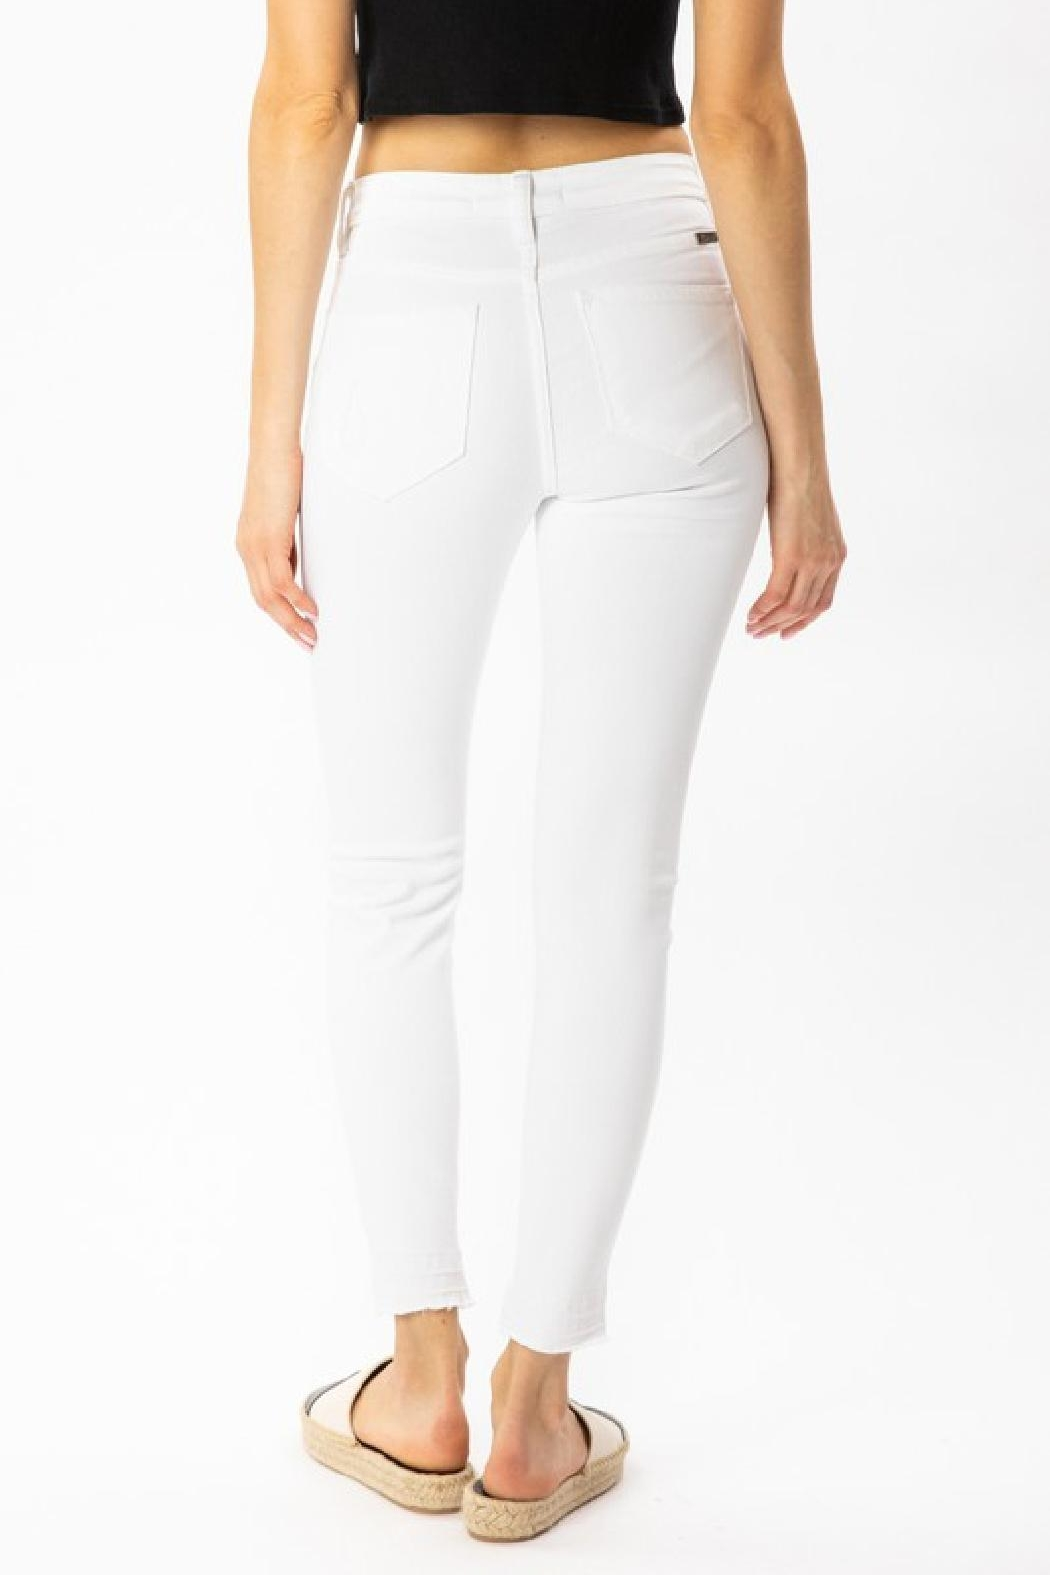 Kan Can White Distressed Jeans - Back Cropped Image